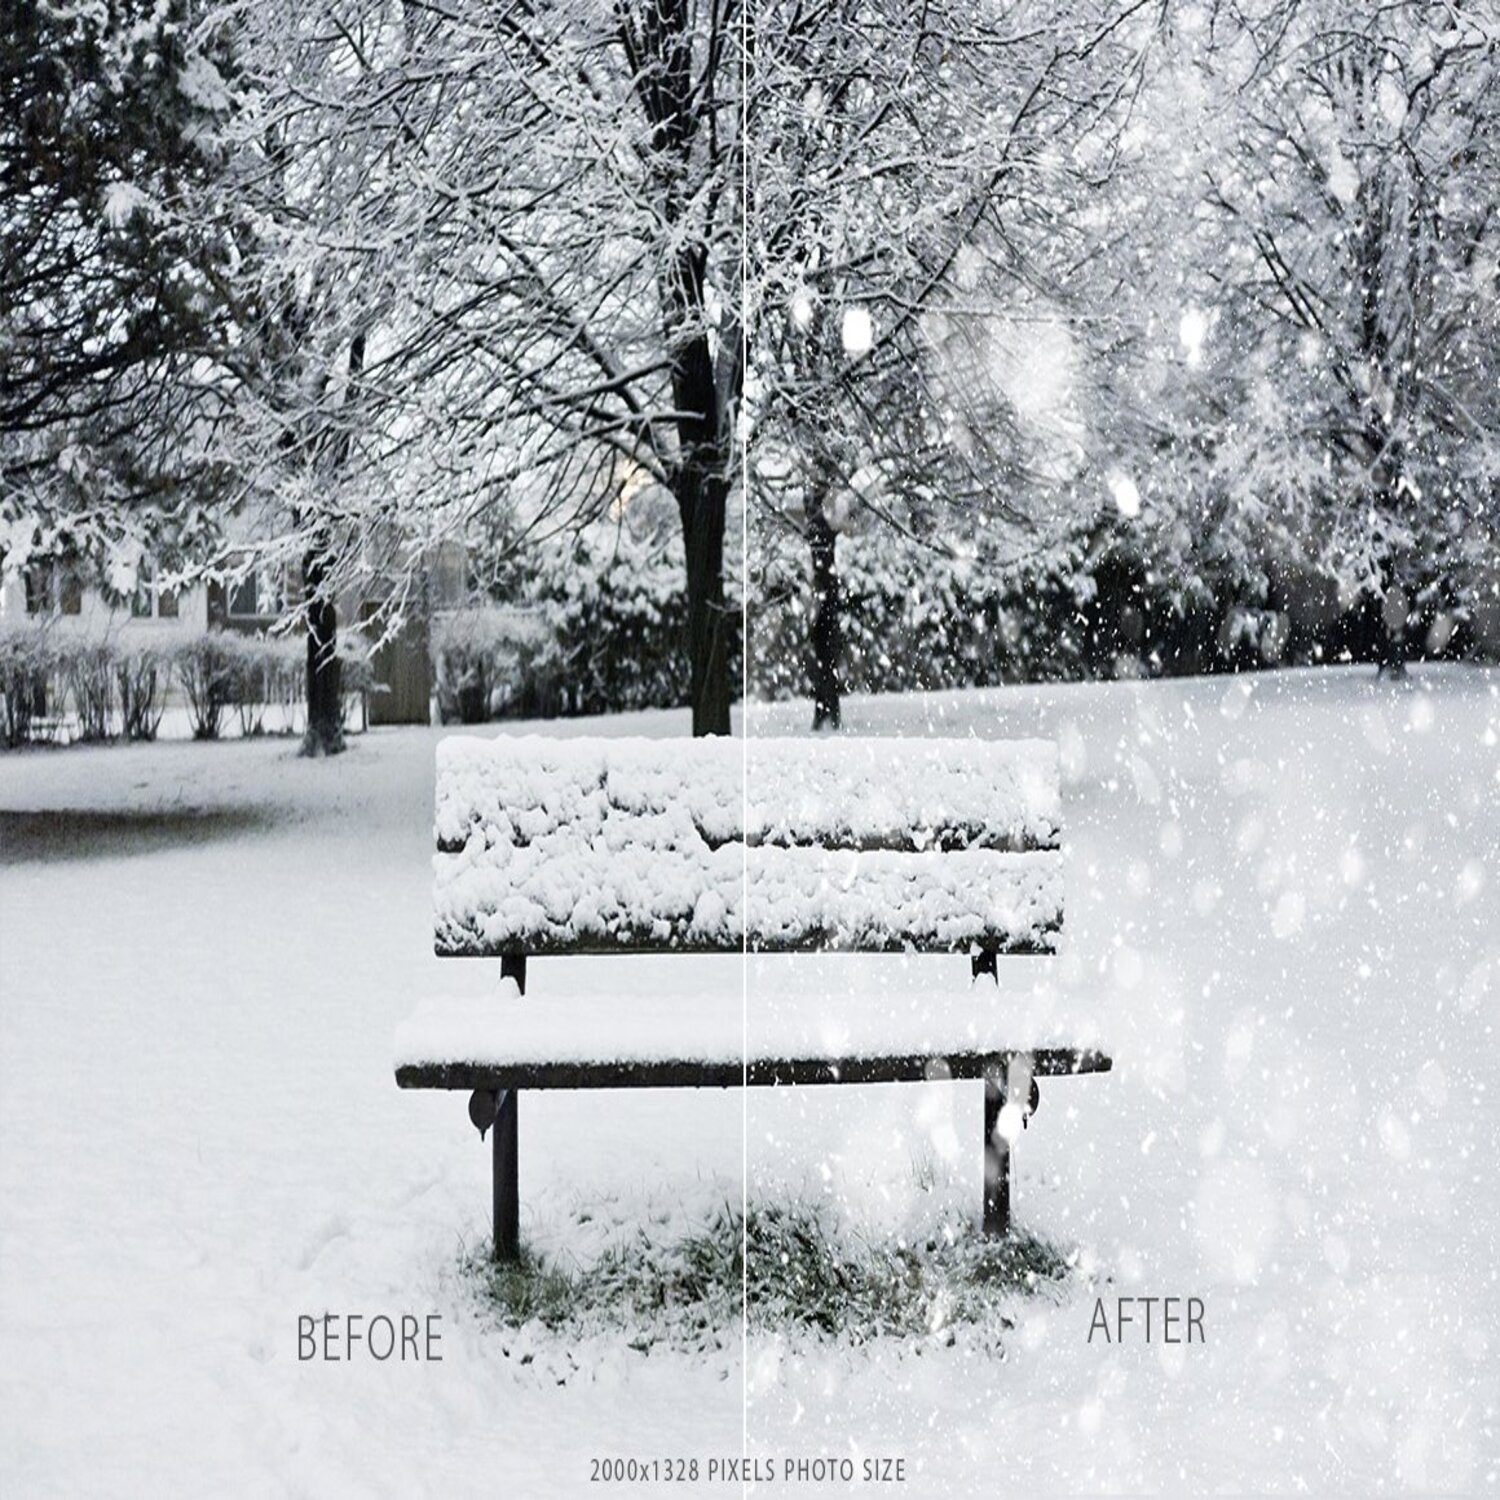 Real Snow Photoshop Action cover image.